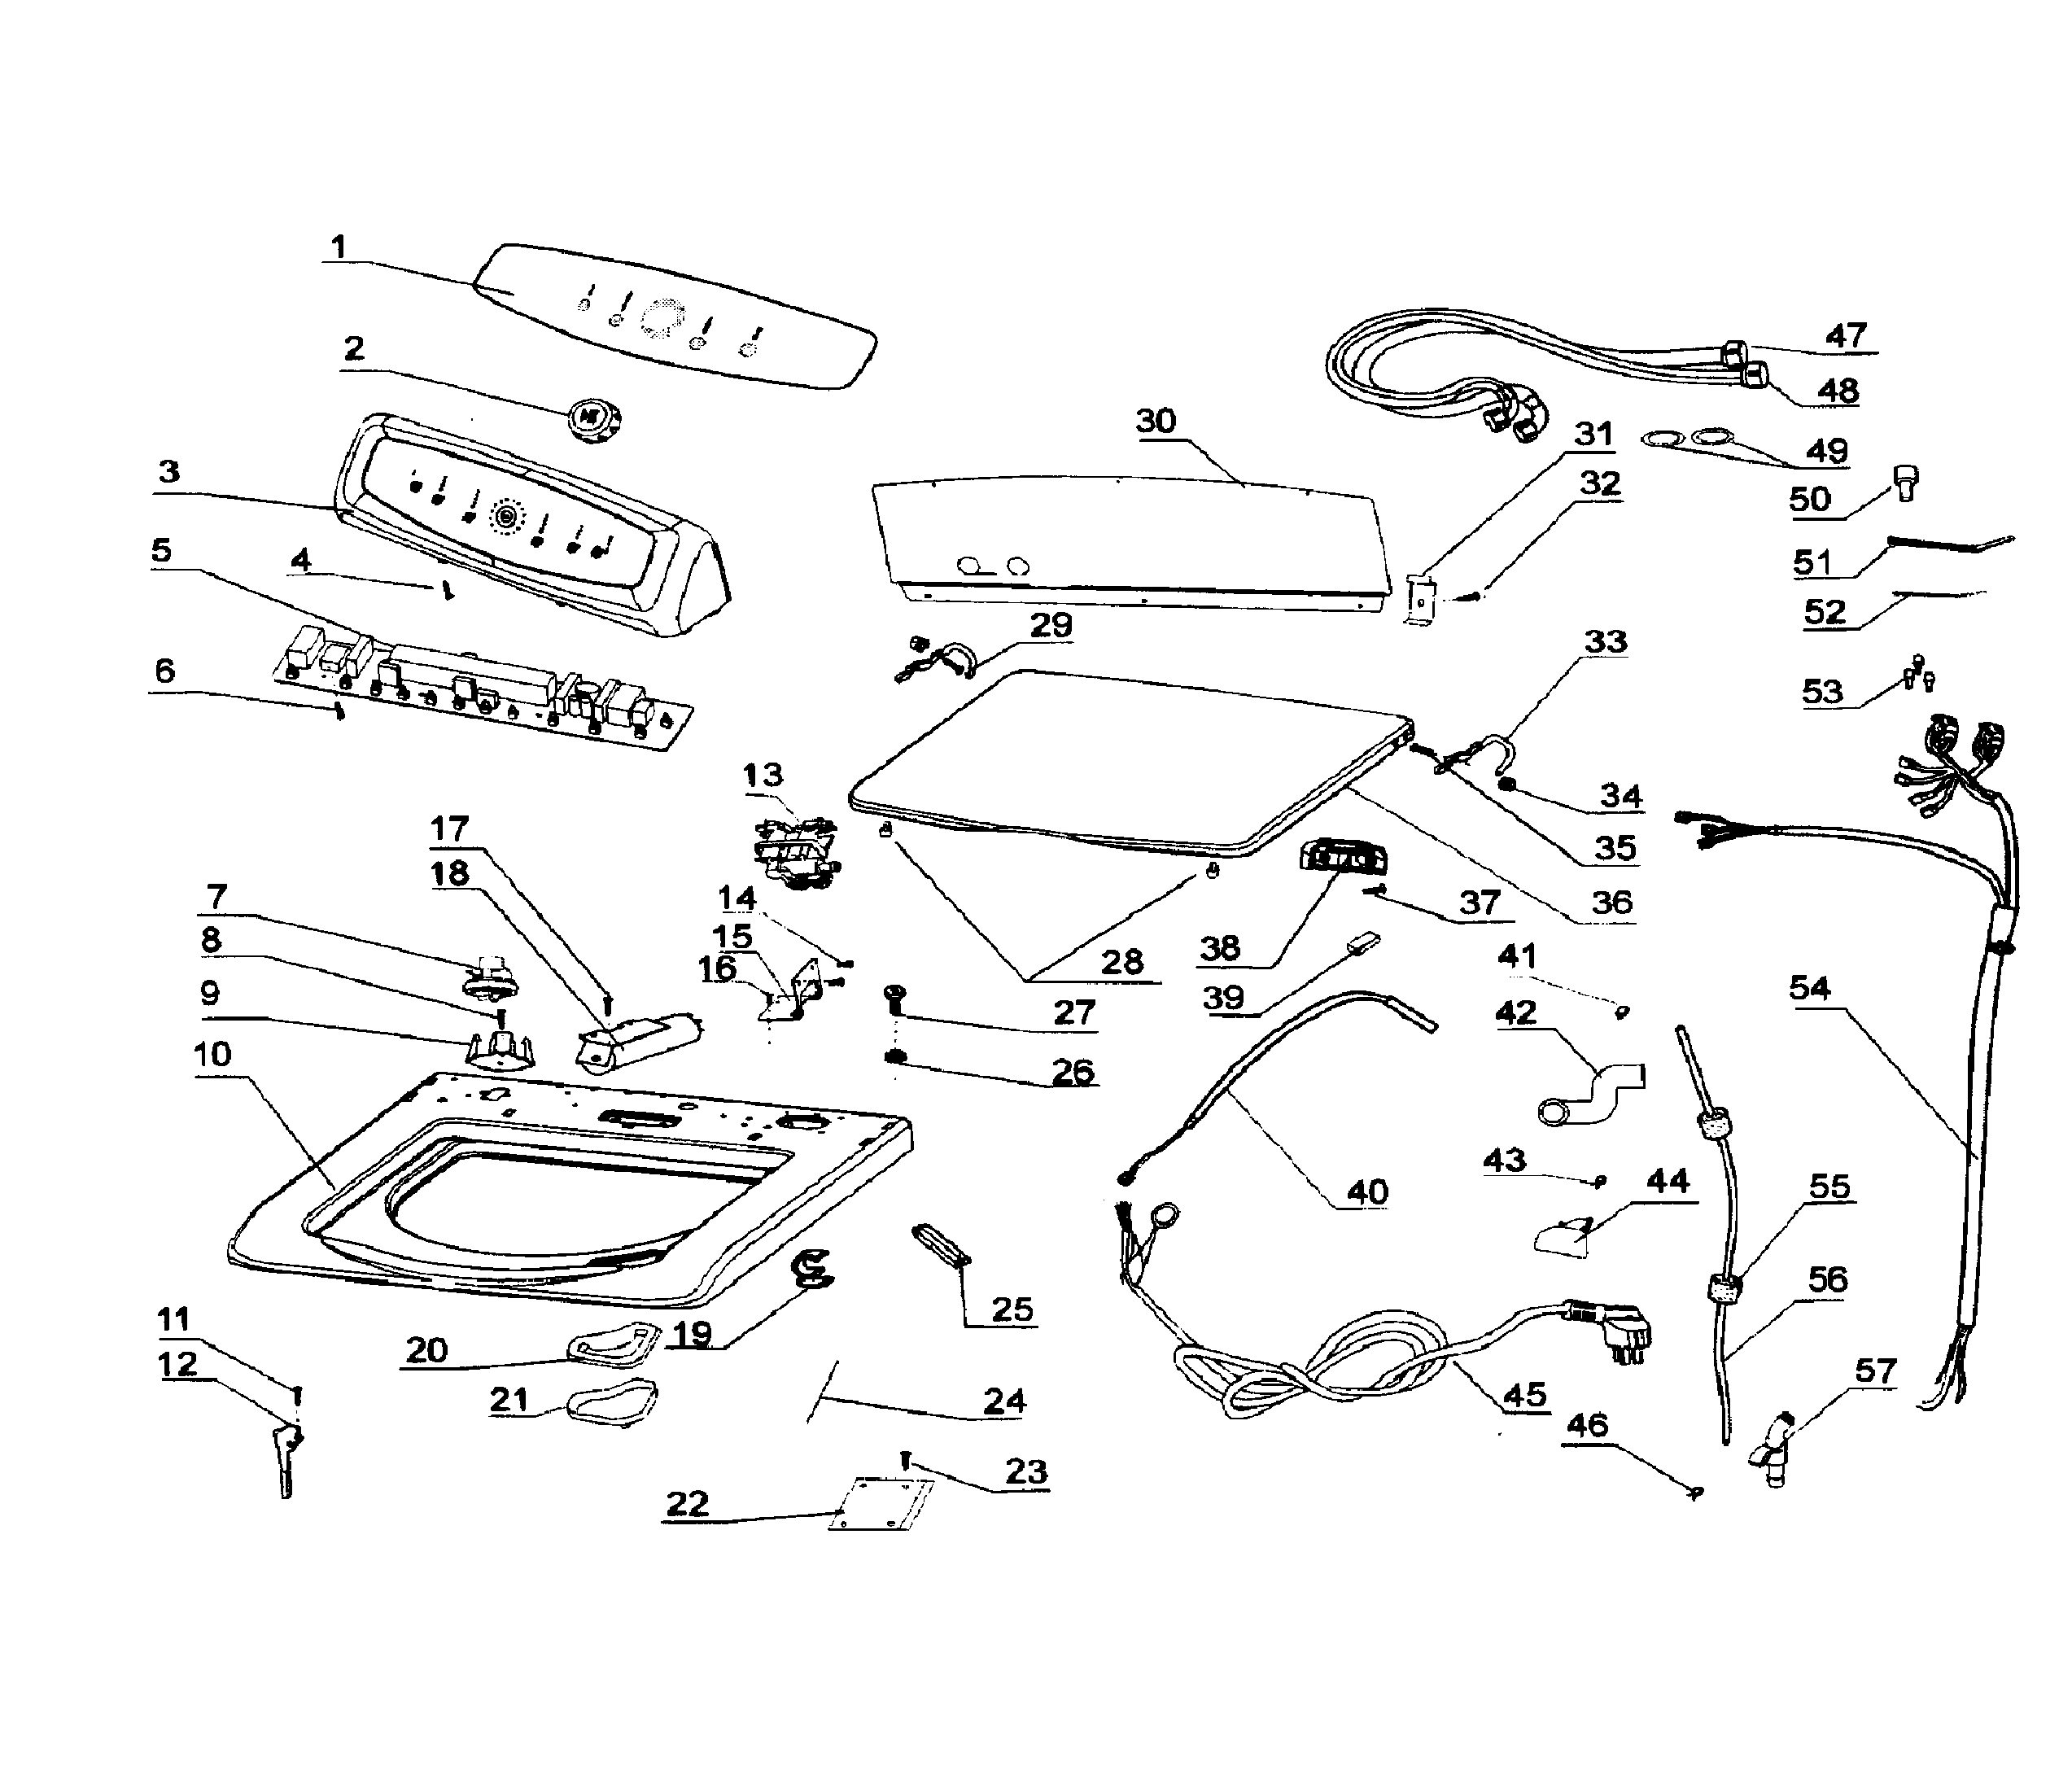 [DIAGRAM] Bobcat 440 Skid Steer Wiring Diagram B FULL